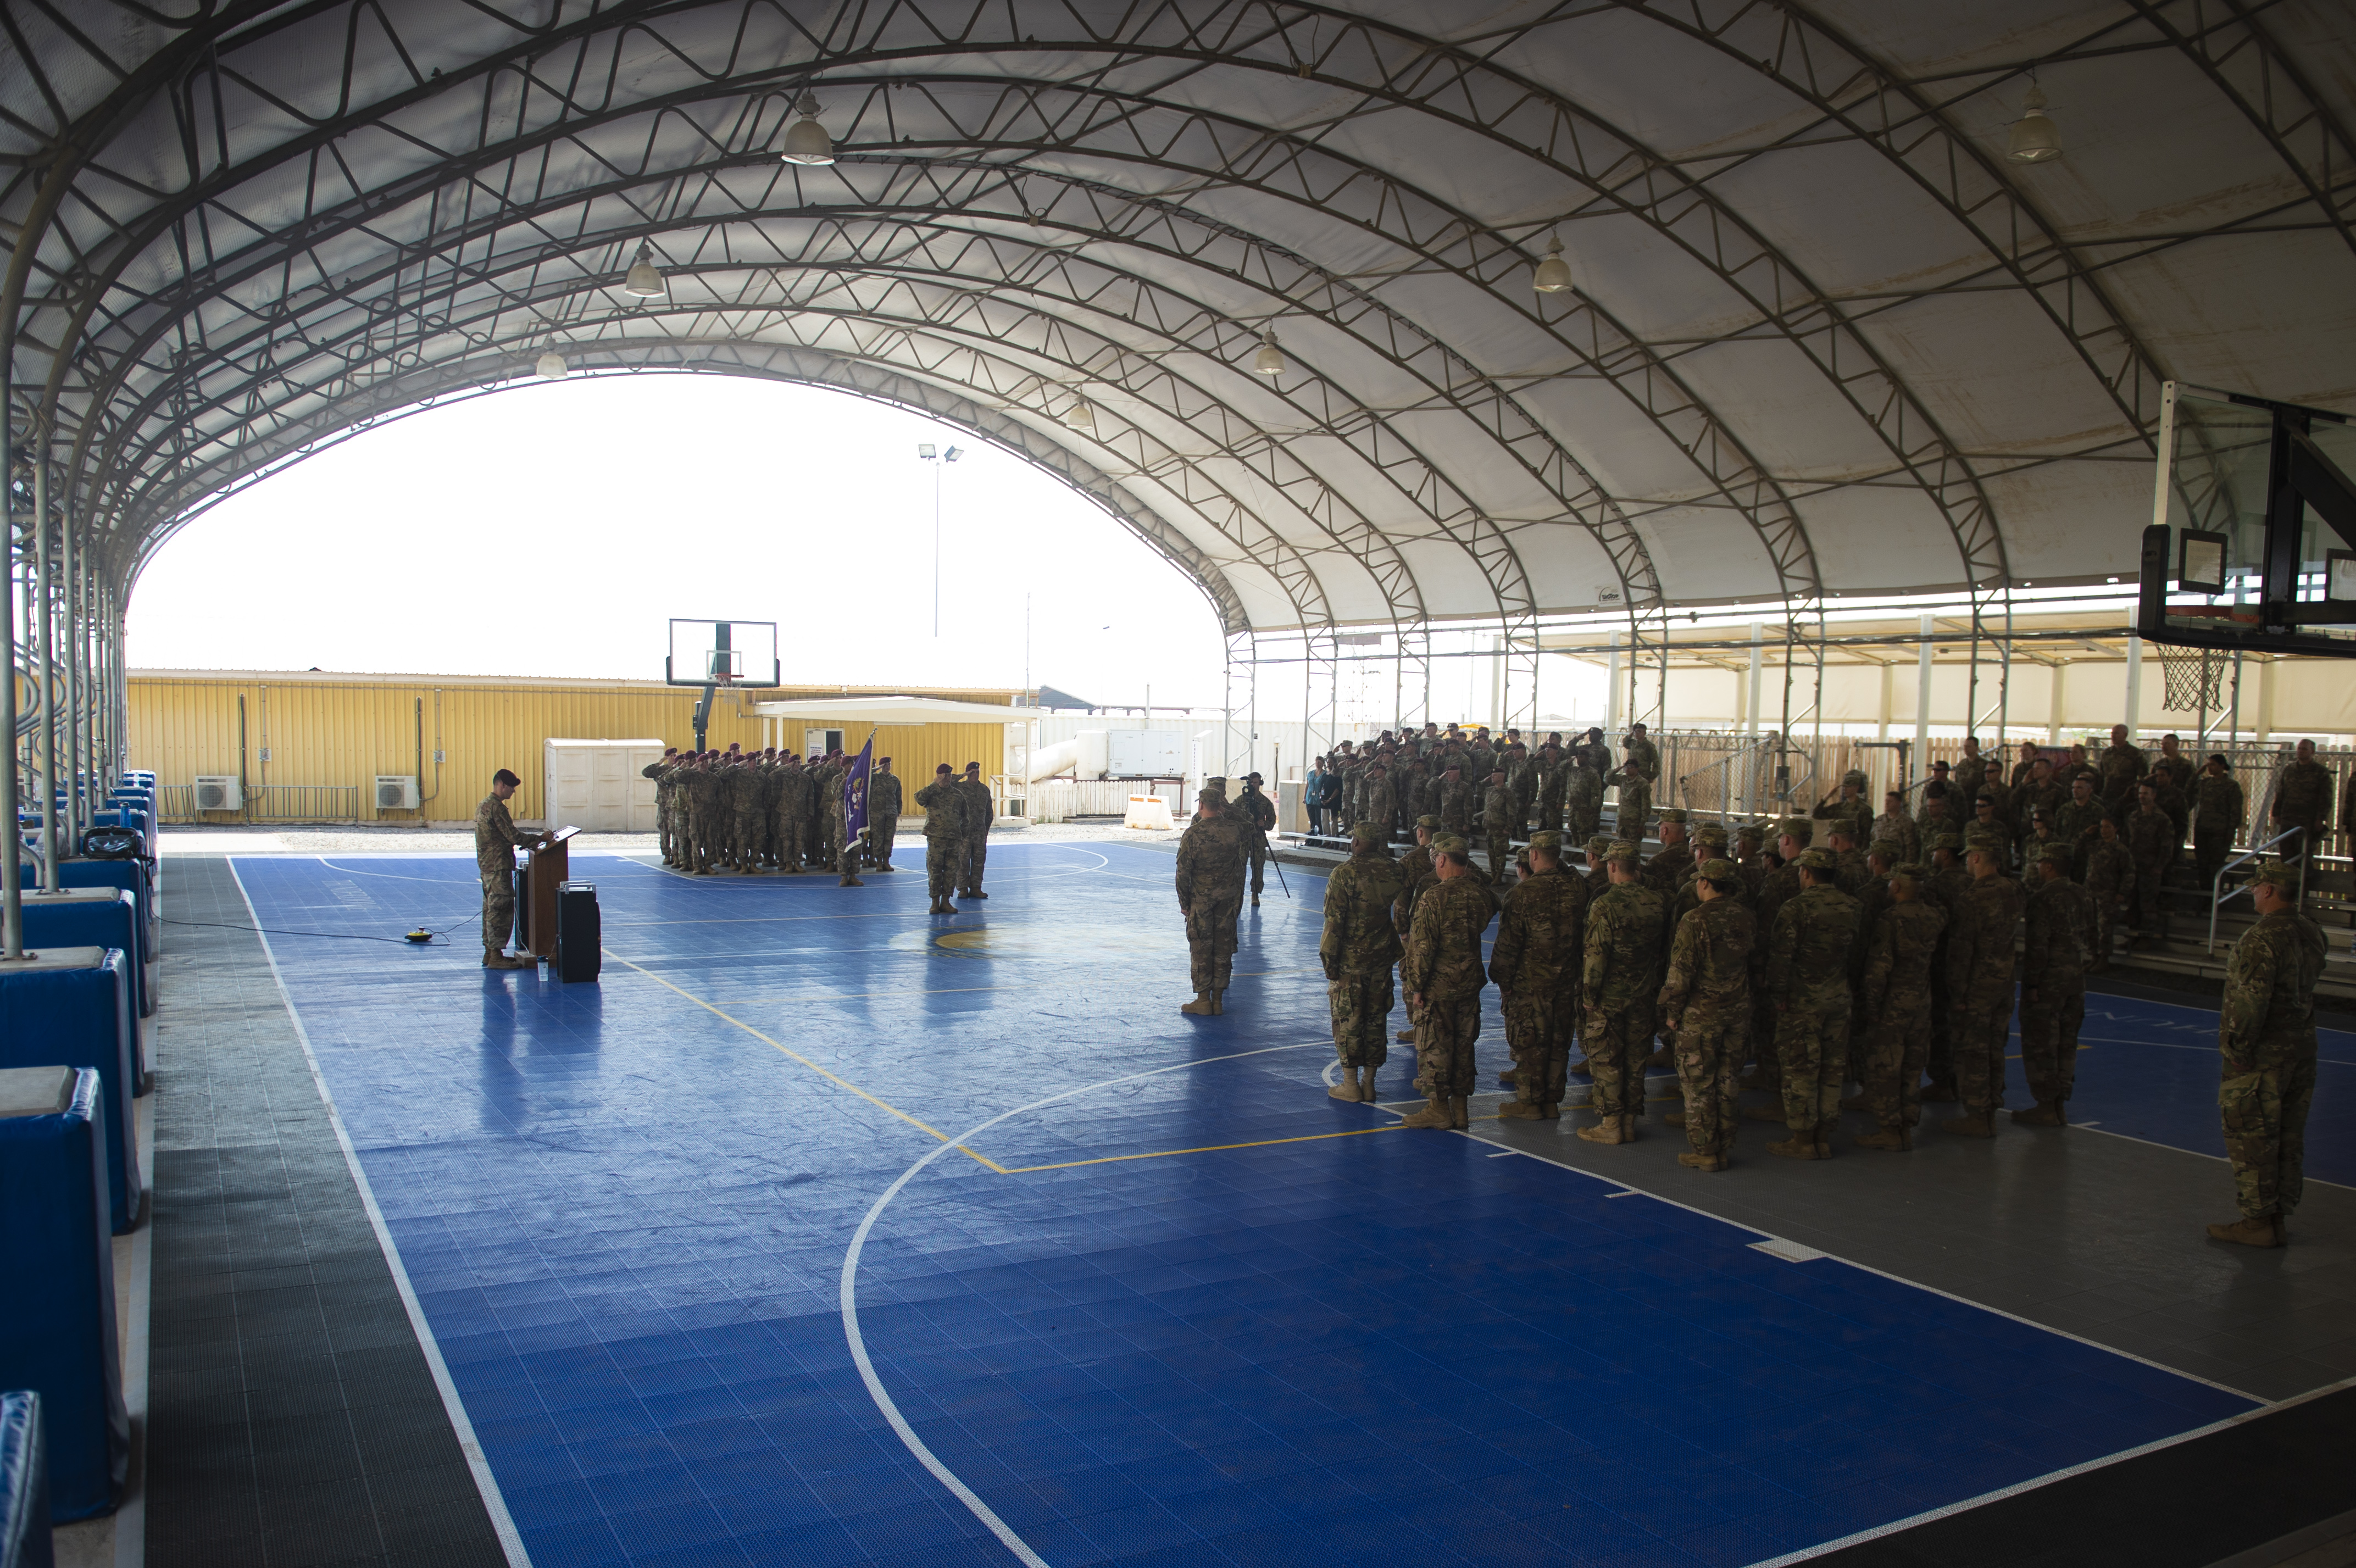 The 404th Civil Affairs Battalion and 403rd CA Battalion salute during the national anthem during a transfer of authority ceremony on Camp Lemonnier, Djibouti, Oct. 13, 2018. The 404th CA Battalion transferred its authority to the 403rd CA Battalion, who will now continue the mission throughout the Horn of Africa. (U.S. Air Force photo by Senior Airman Scott Jackson)